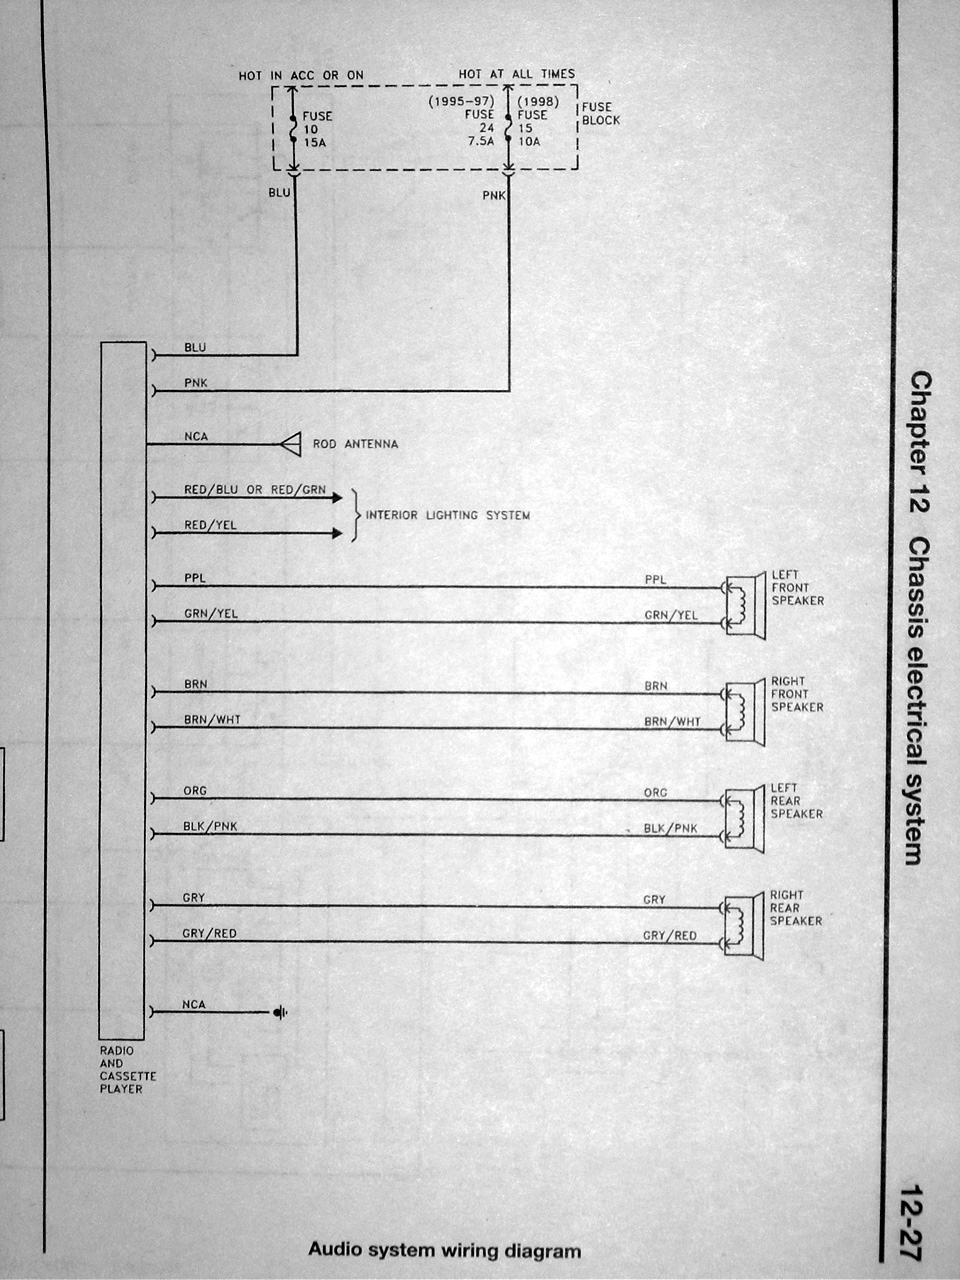 DSC01849 wiring diagram thread *useful info* nissan forum 2003 nissan frontier wiring diagram at bayanpartner.co